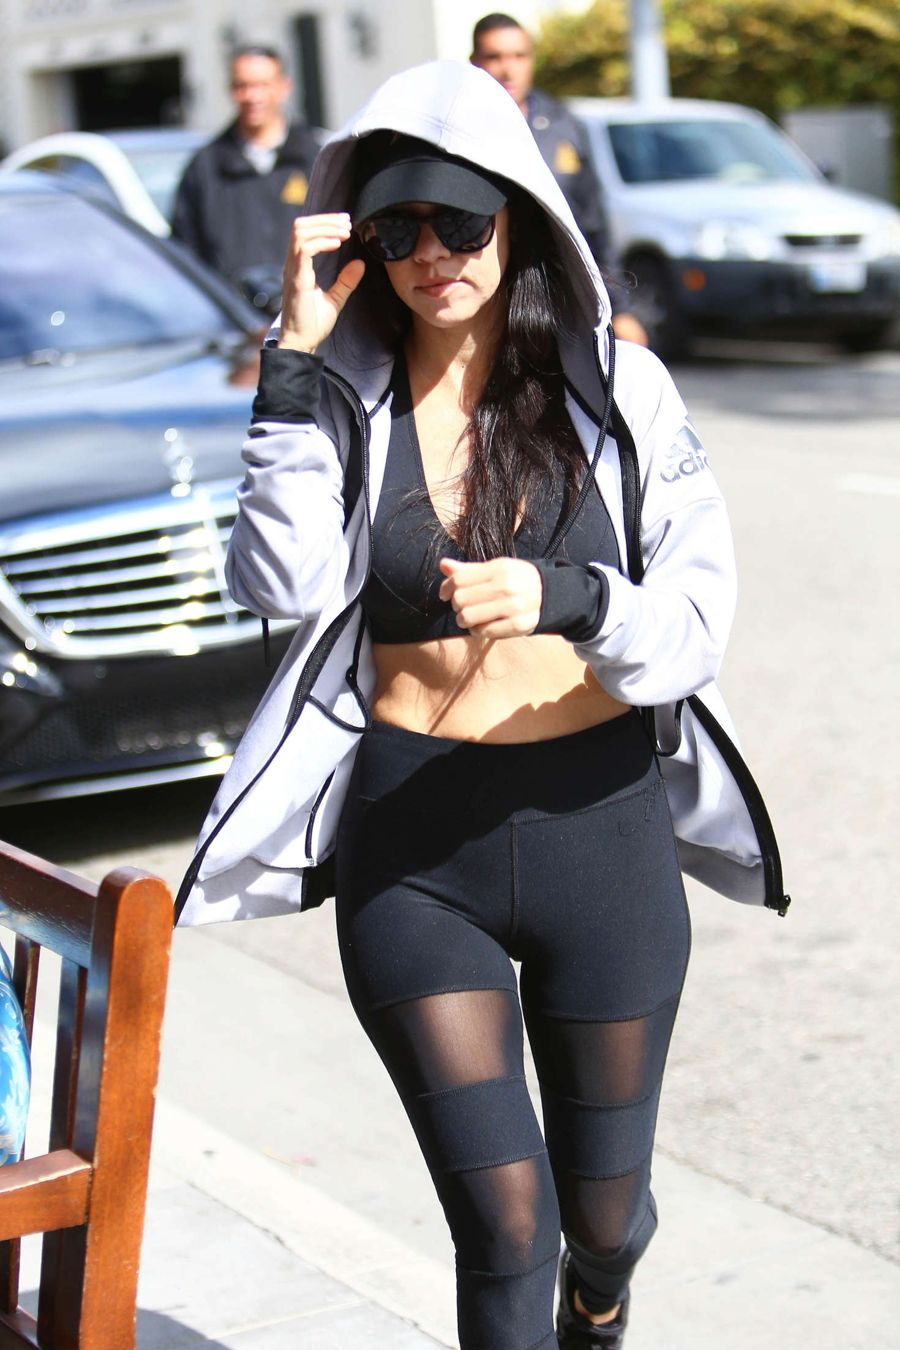 Kourtney Kardashian in Tights and Sports Bra out